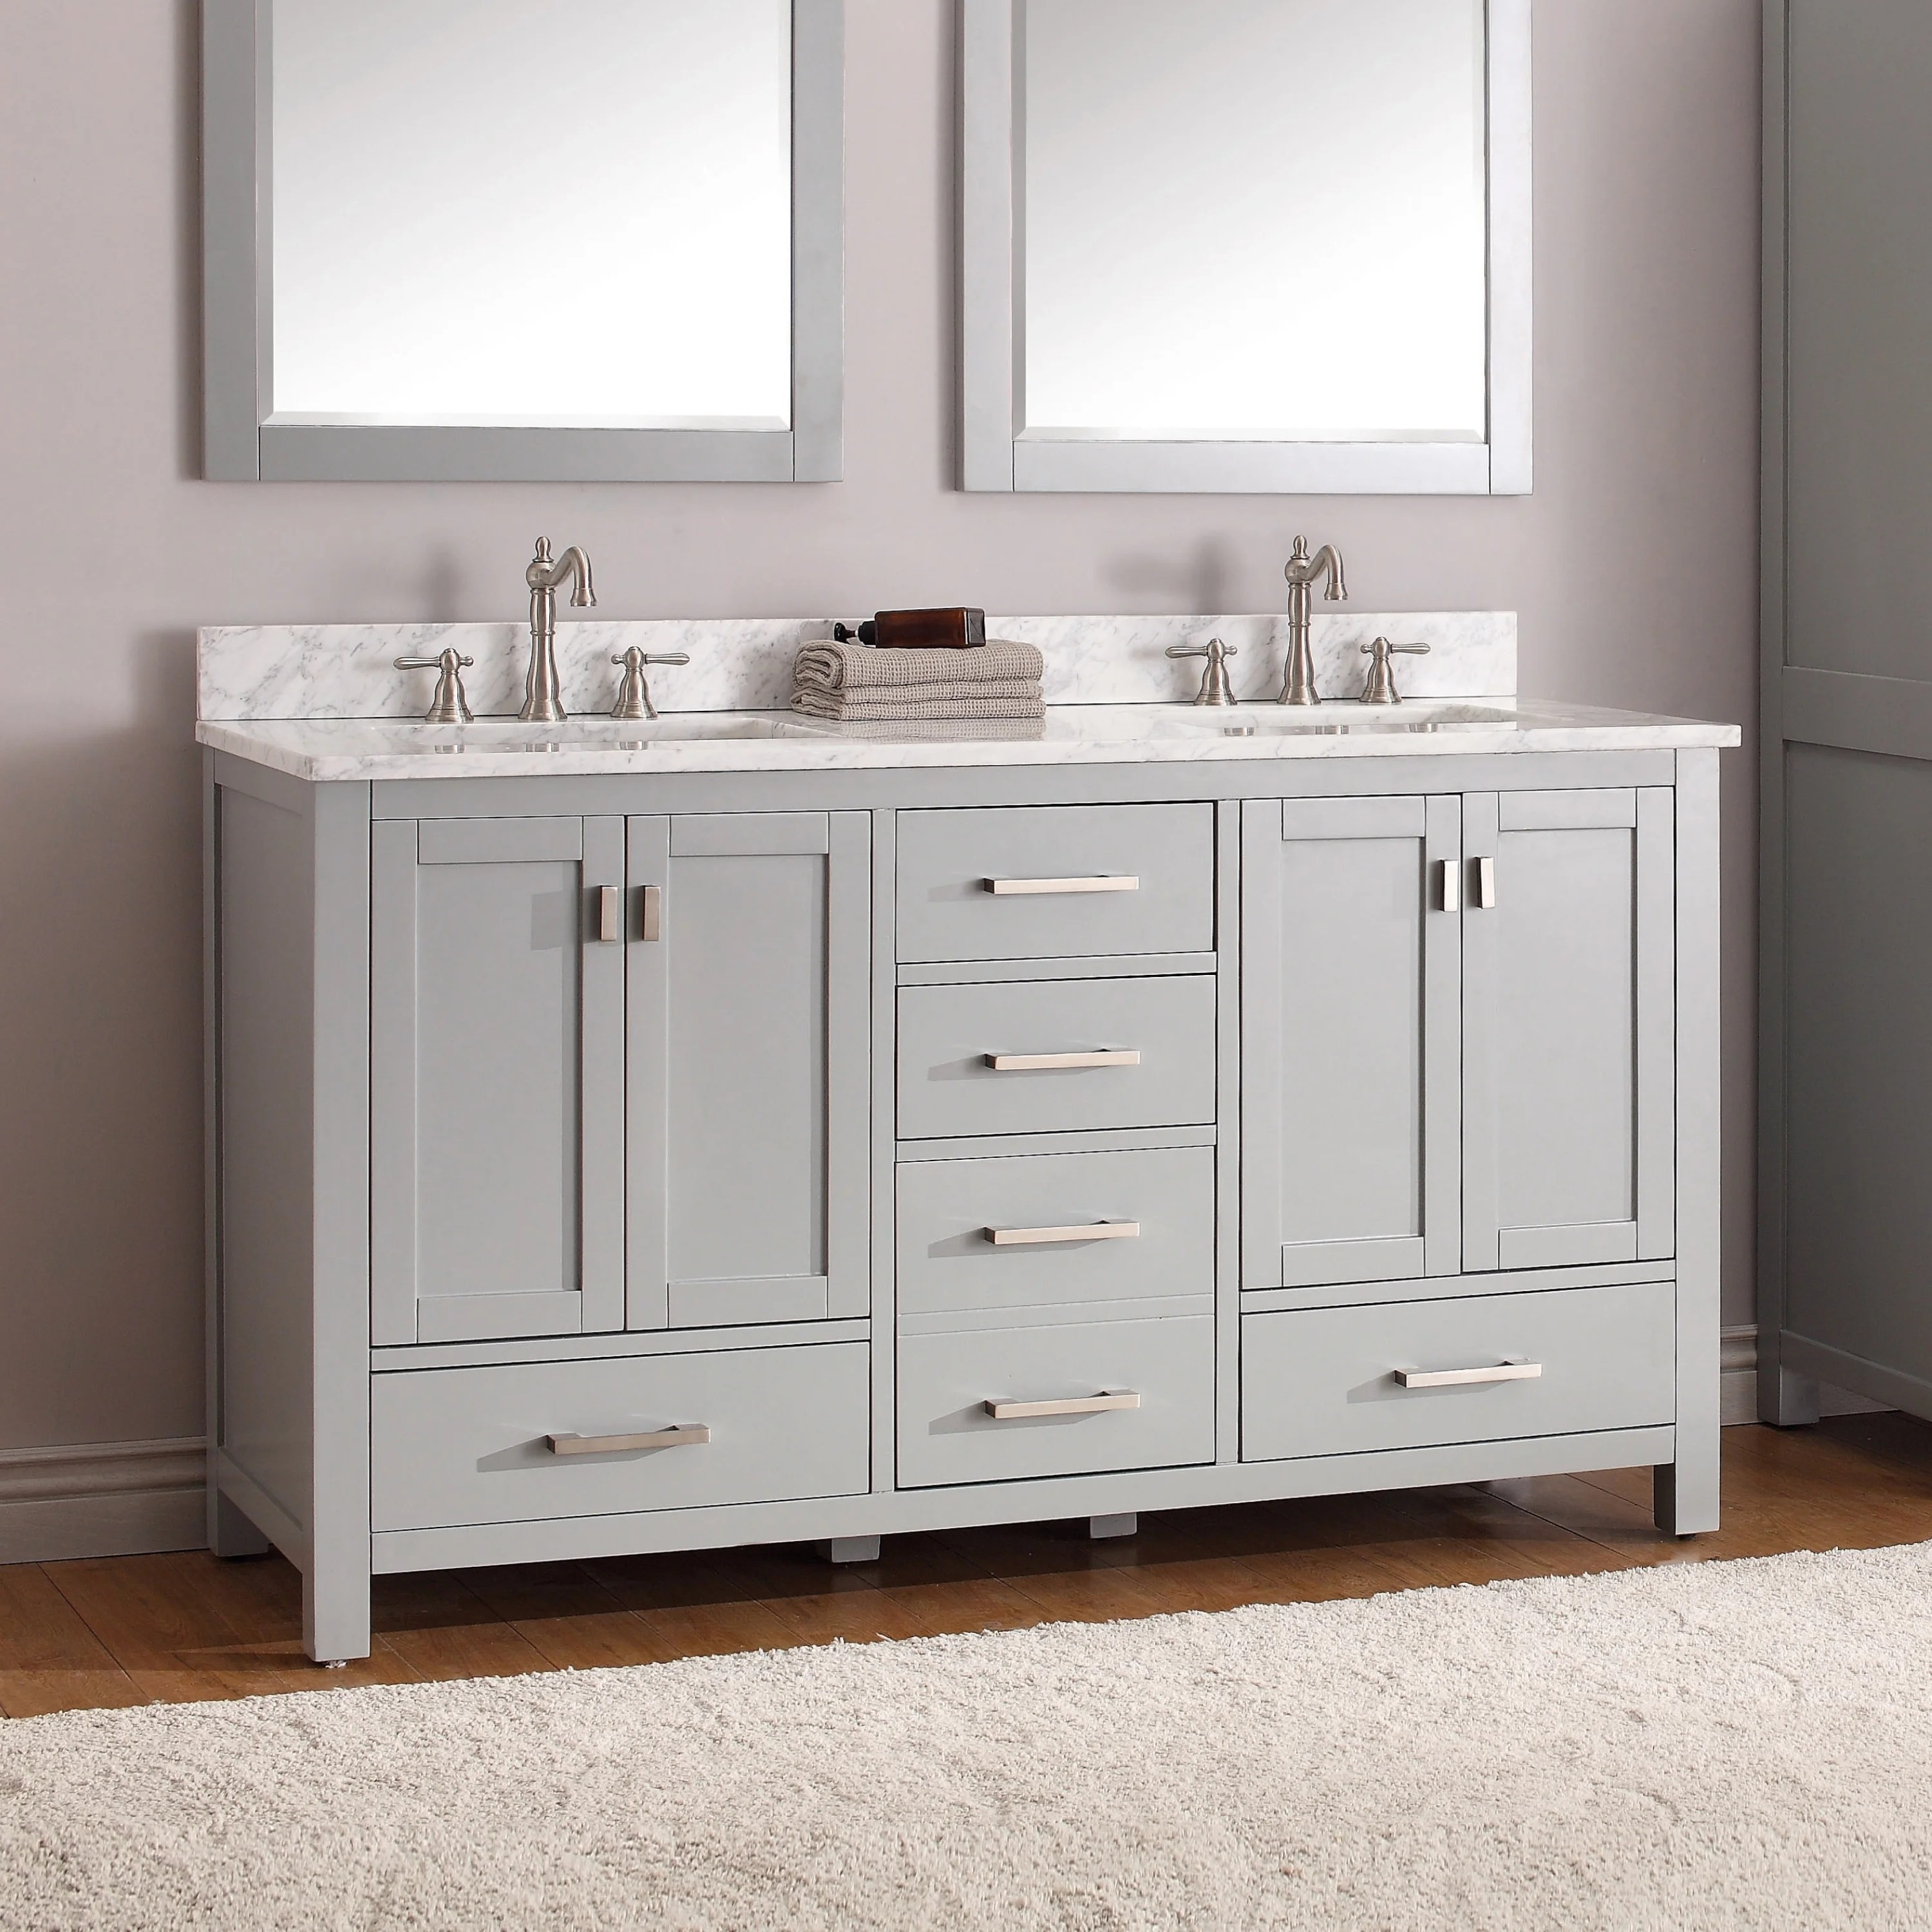 avanity modero 61 inch double vanity combo in chilled gray with top and sink